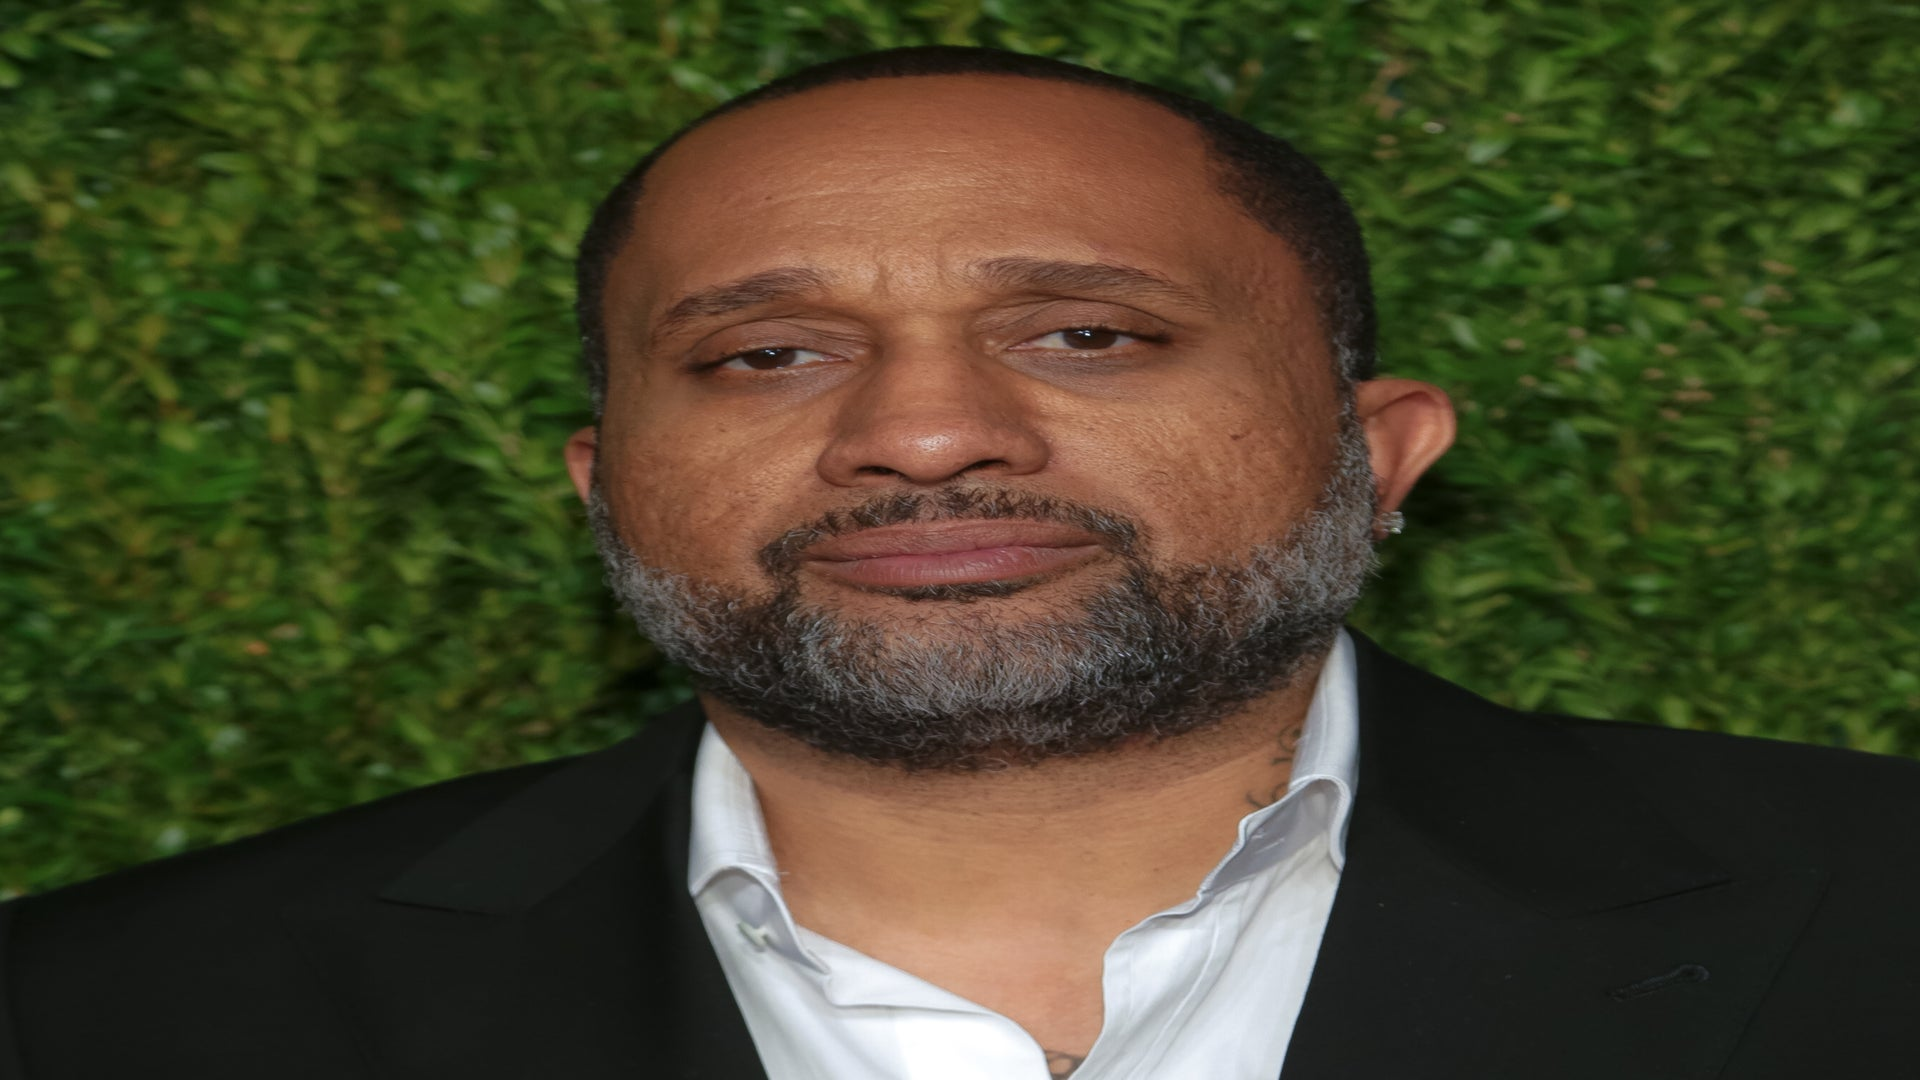 Black-ish: Why Kenya Barris Decided To Celebrate Black History With A Musical Episode